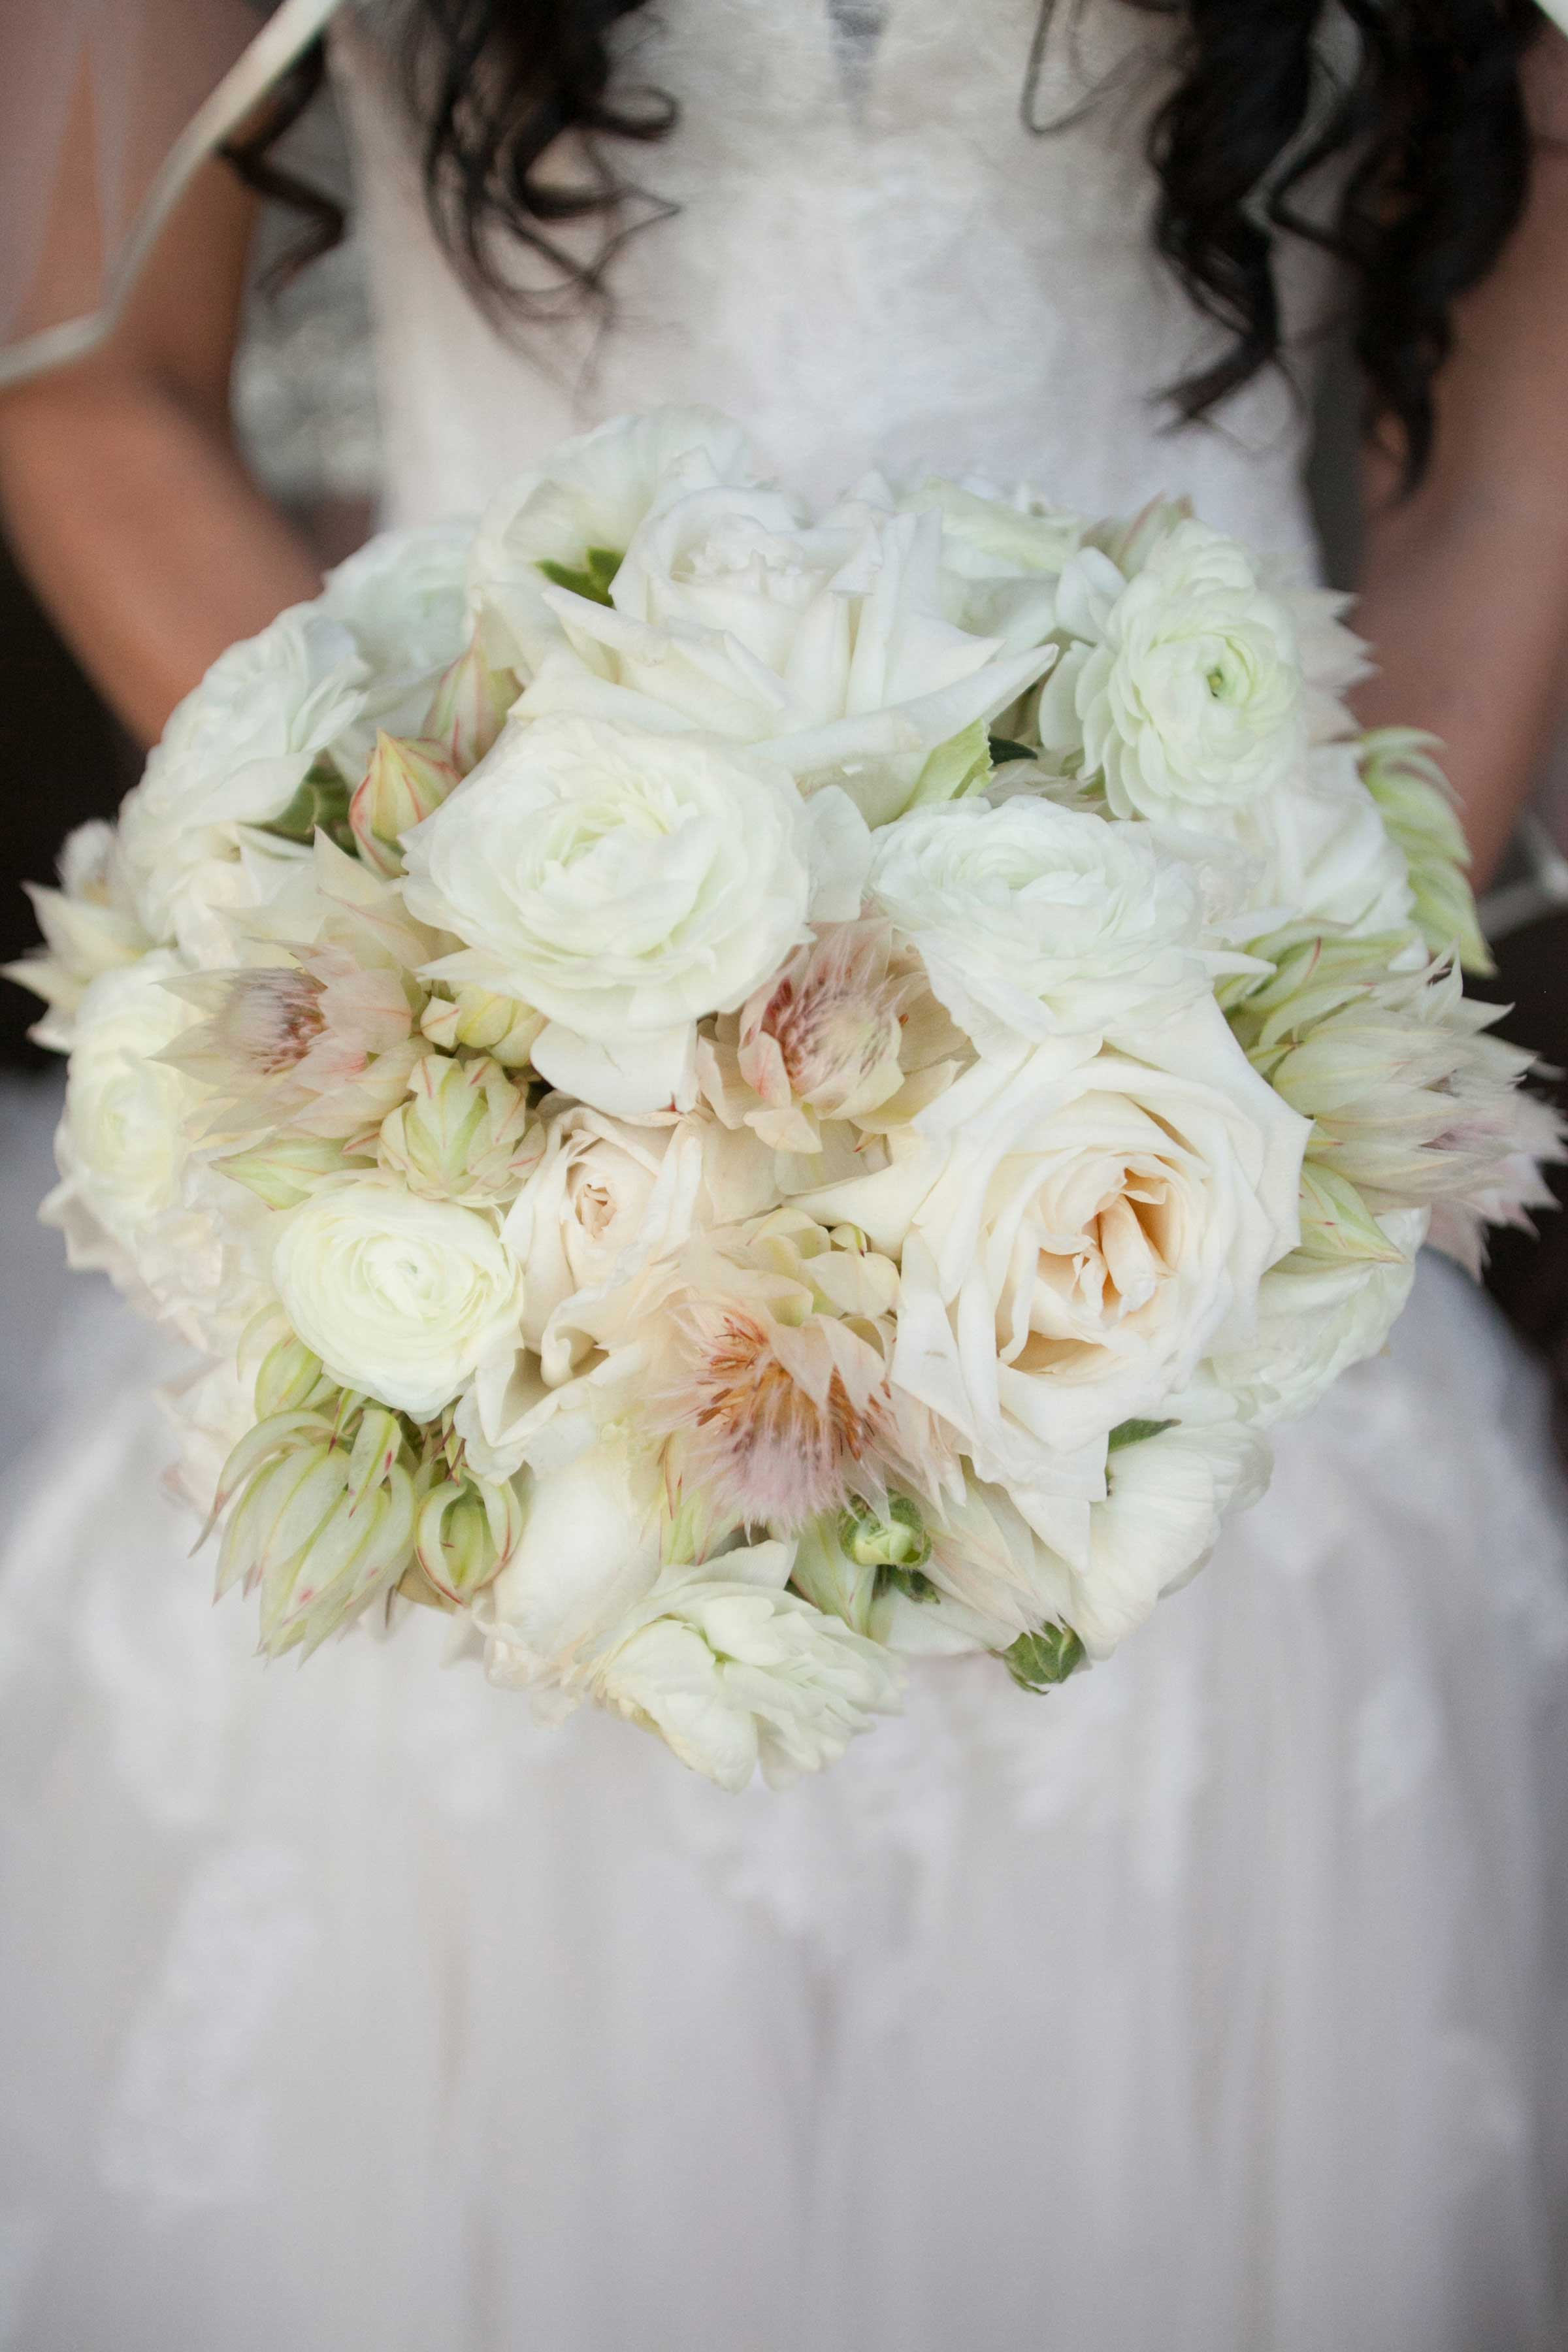 Wedding bouquet with blushing bride protea flowers